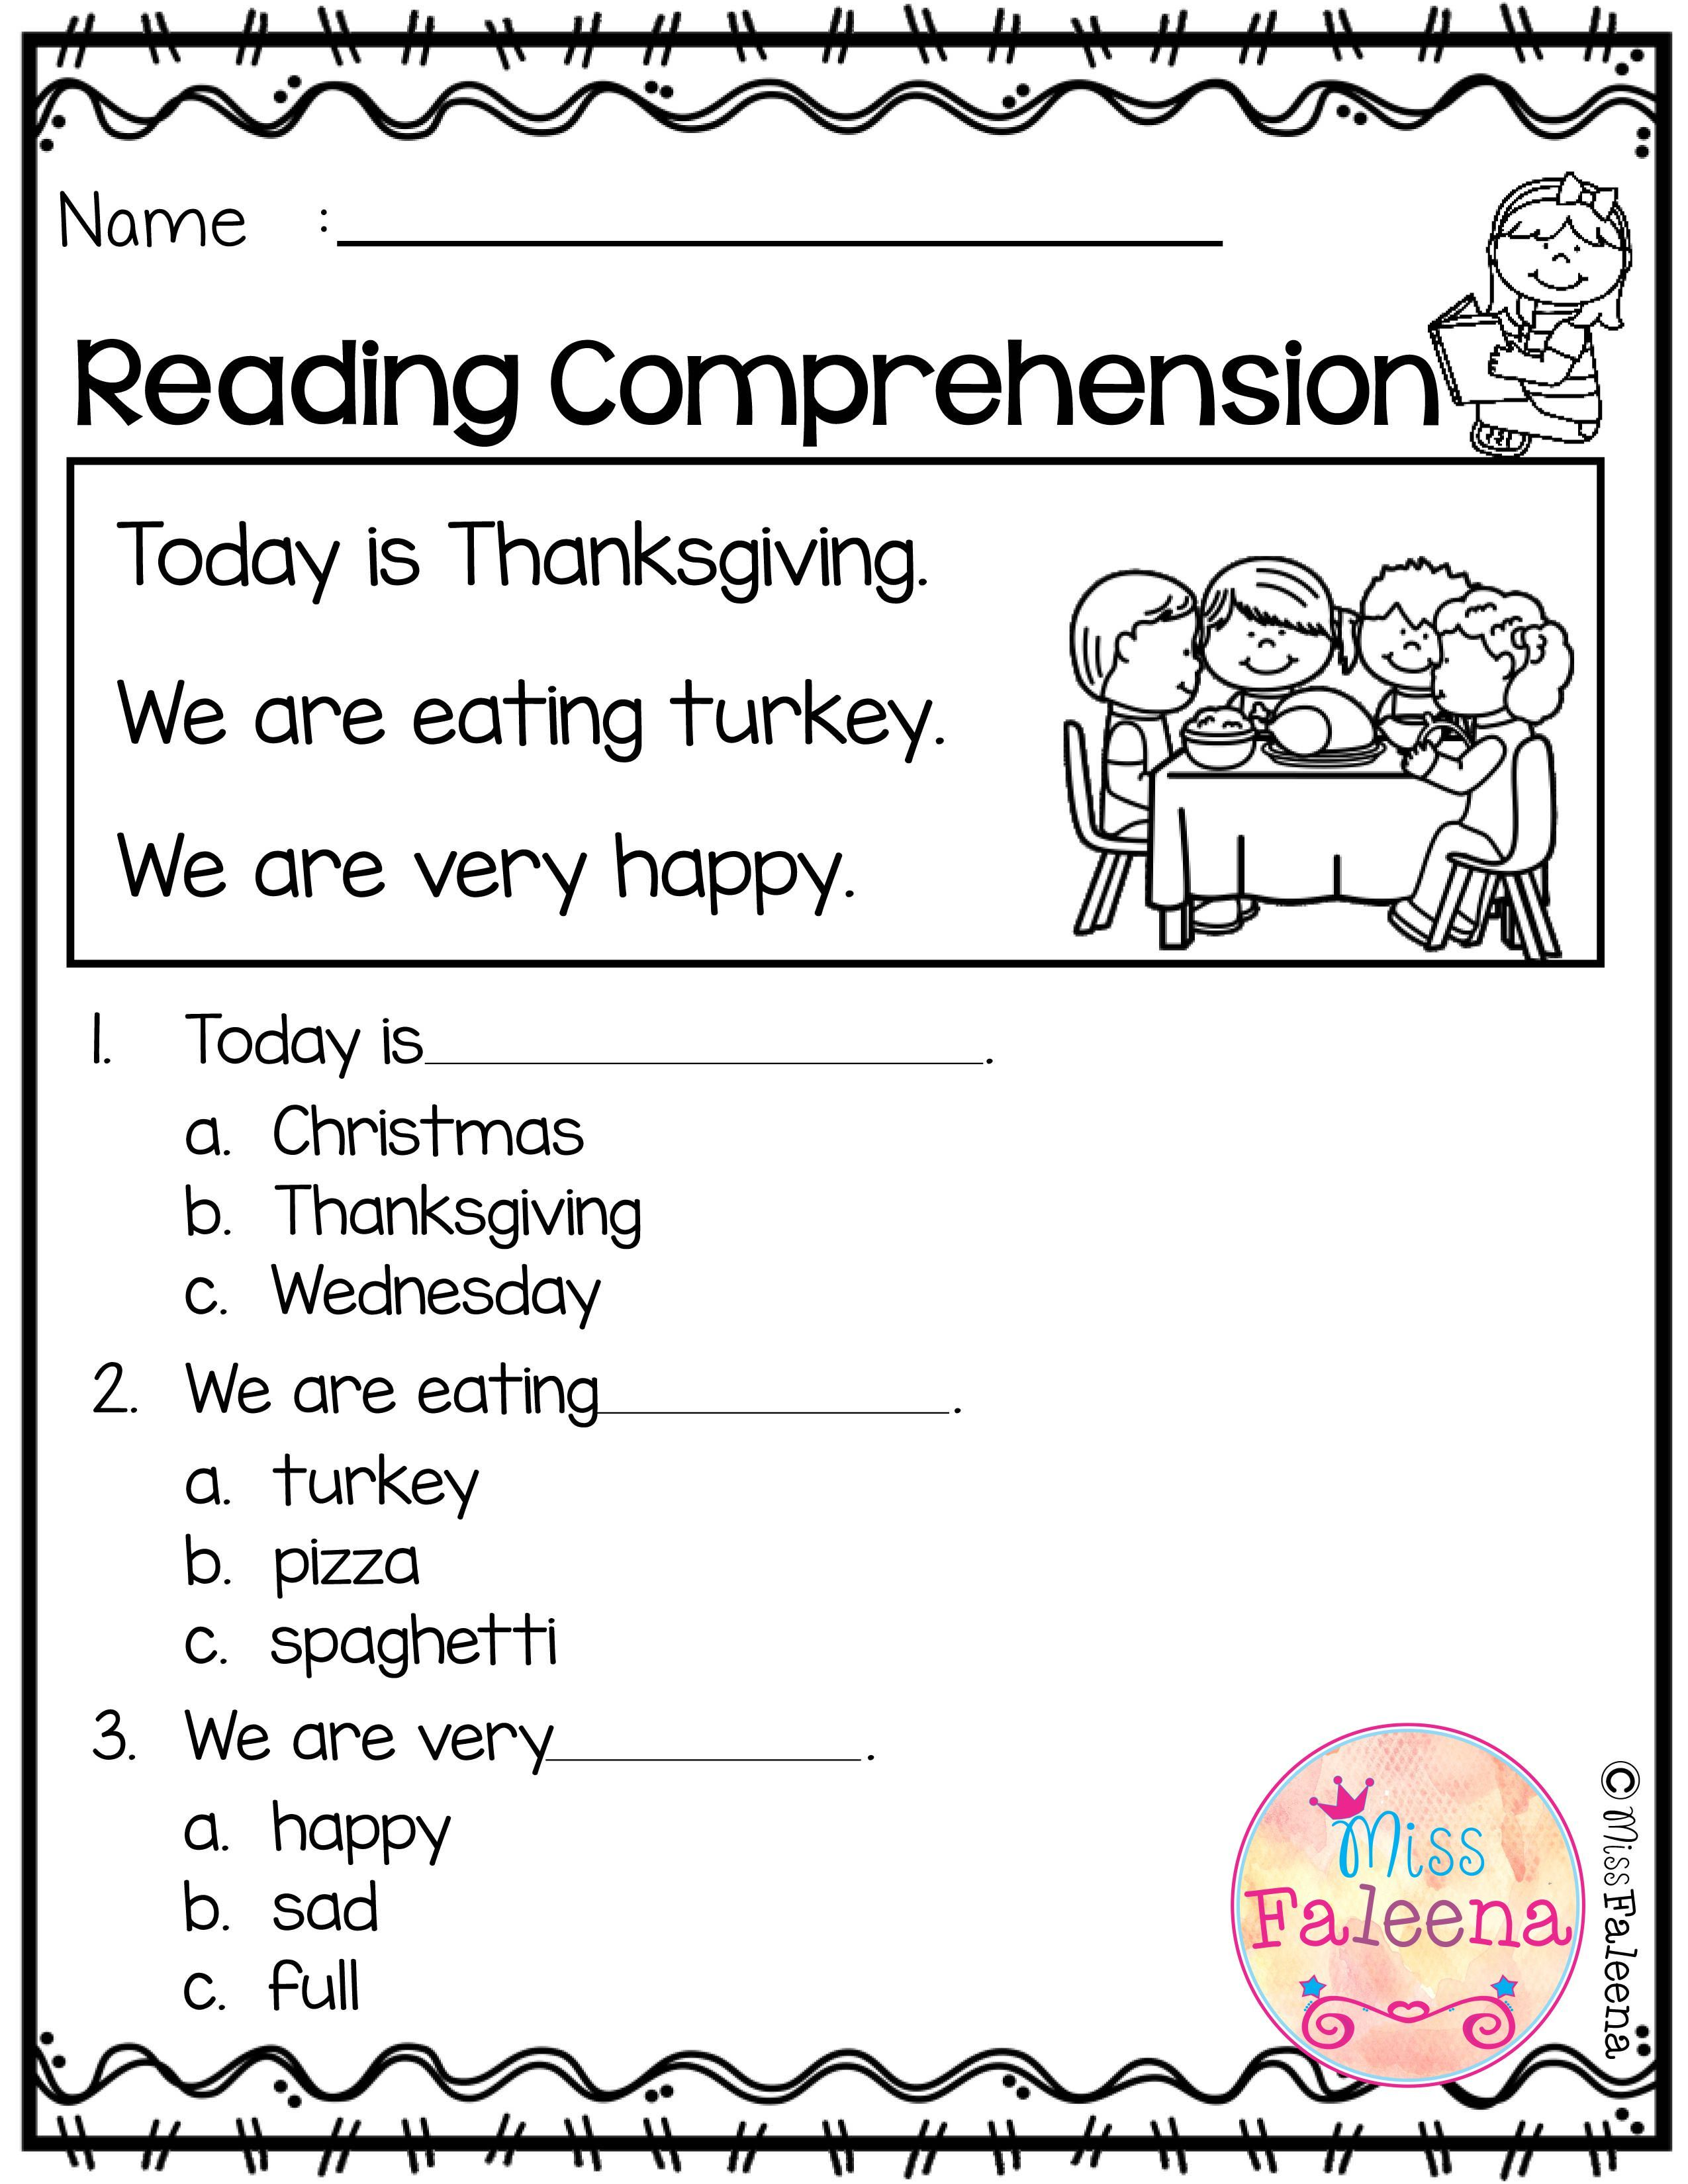 medium resolution of 4th Grade Reading Comprehension Worksheets Thanksgiving   Printable  Worksheets and Activities for Teachers